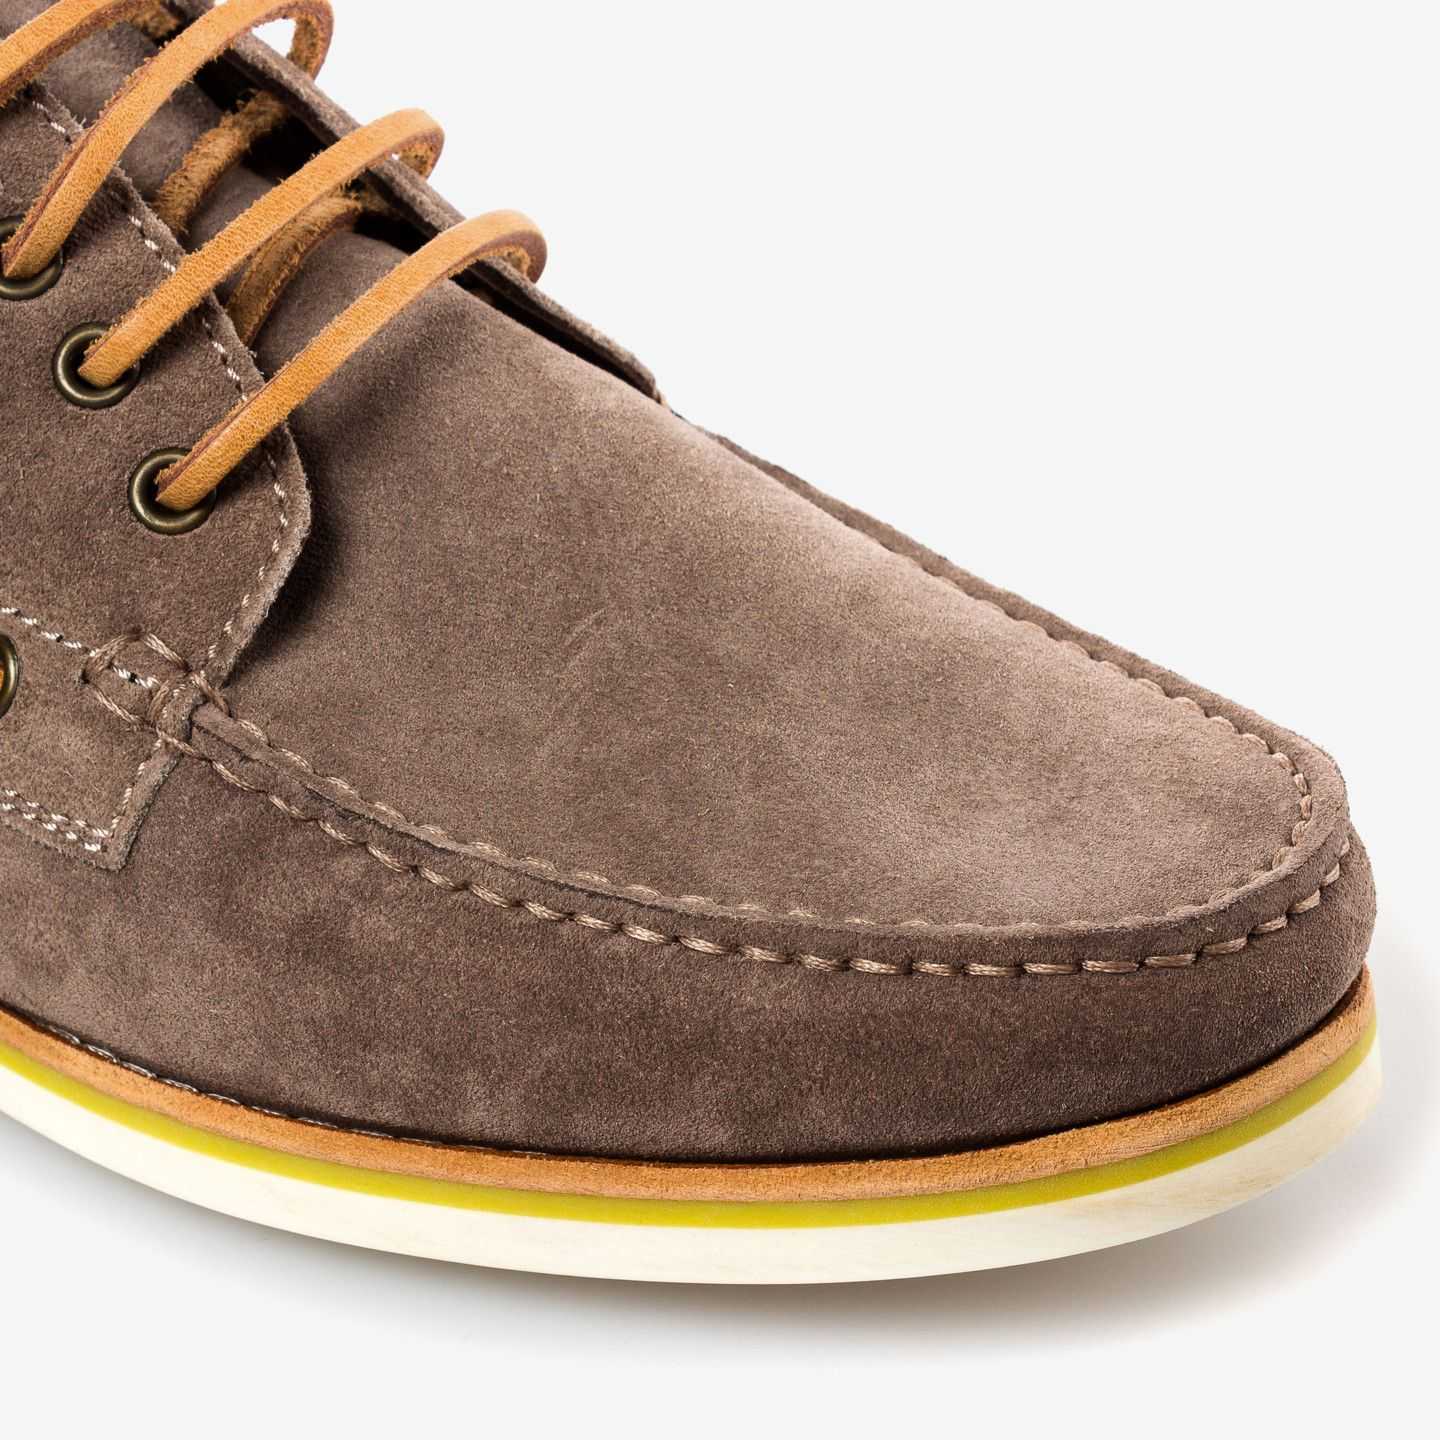 Lanvin / Suede Chukka Boots AW11